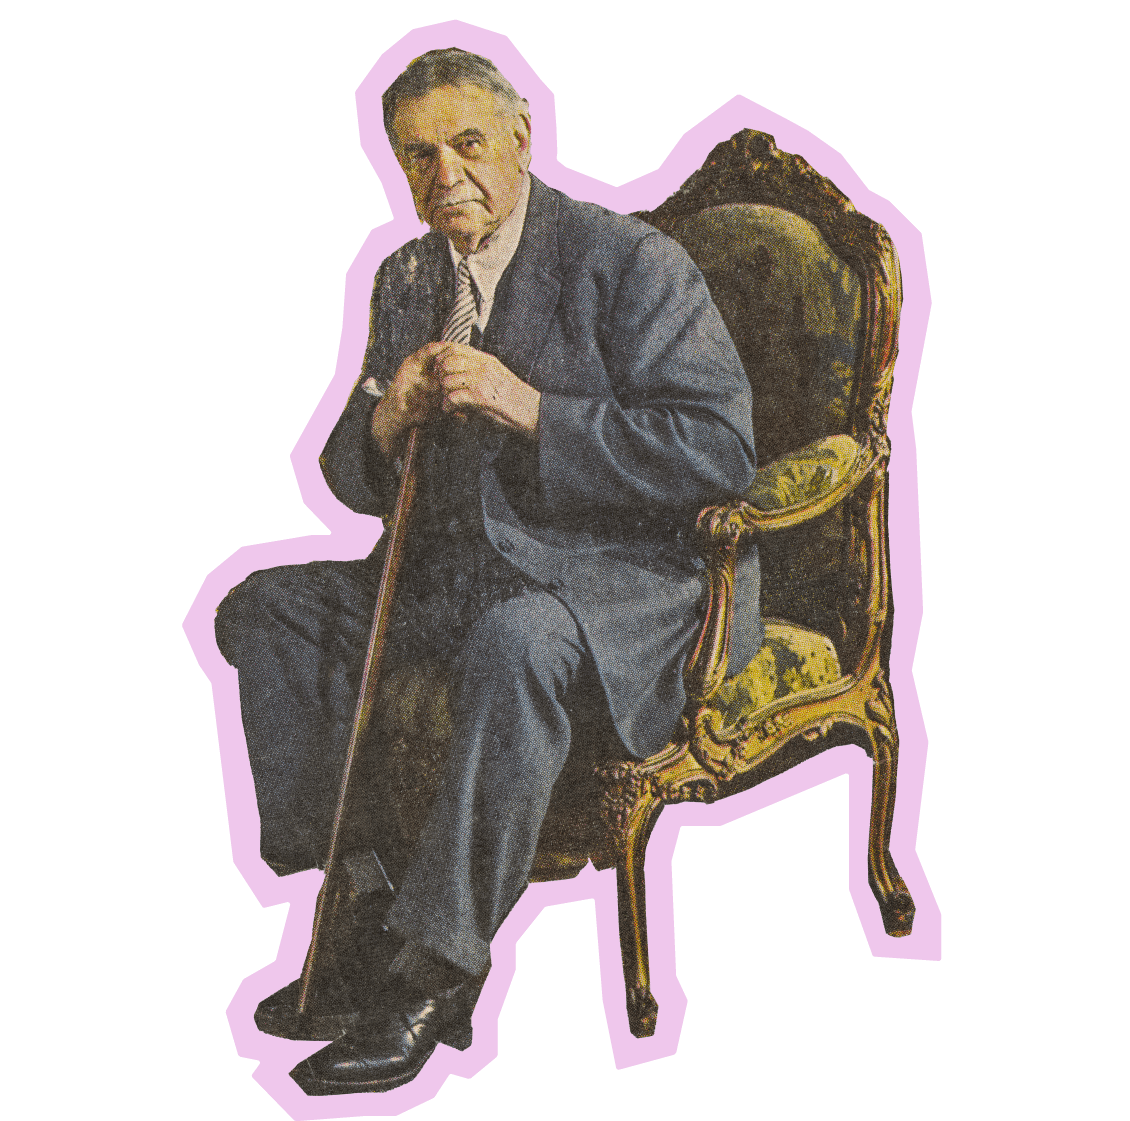 Openmarkets Advice man in a chair is to become an iconic image of wisdom and advice. He's also surrounded with a bit of a lilac halo to offset his rugged features and just give him an air of general pizzazz. Looks pretty comfy, too.